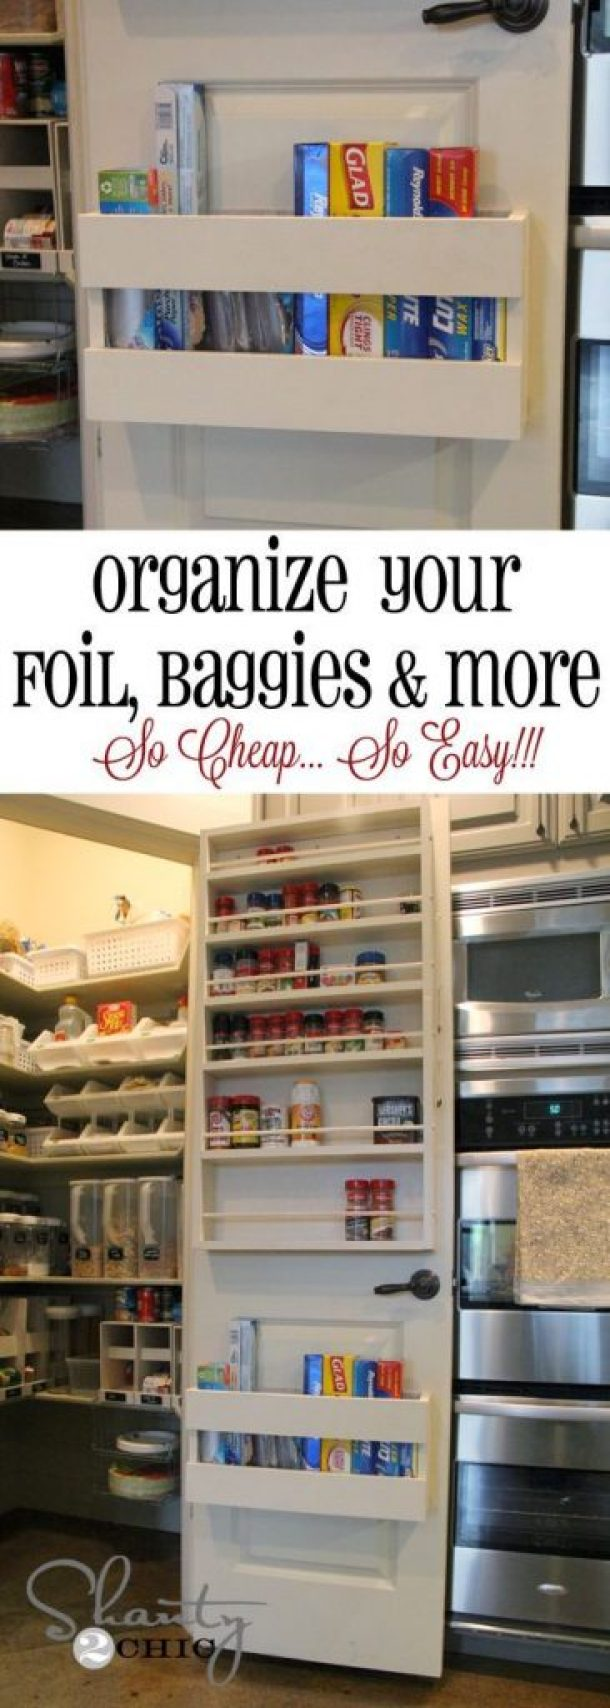 This foil, wax paper and plastic baggies DIY storage rack took her about 10 minutes to build and cost under $10 | Shanty2Chic